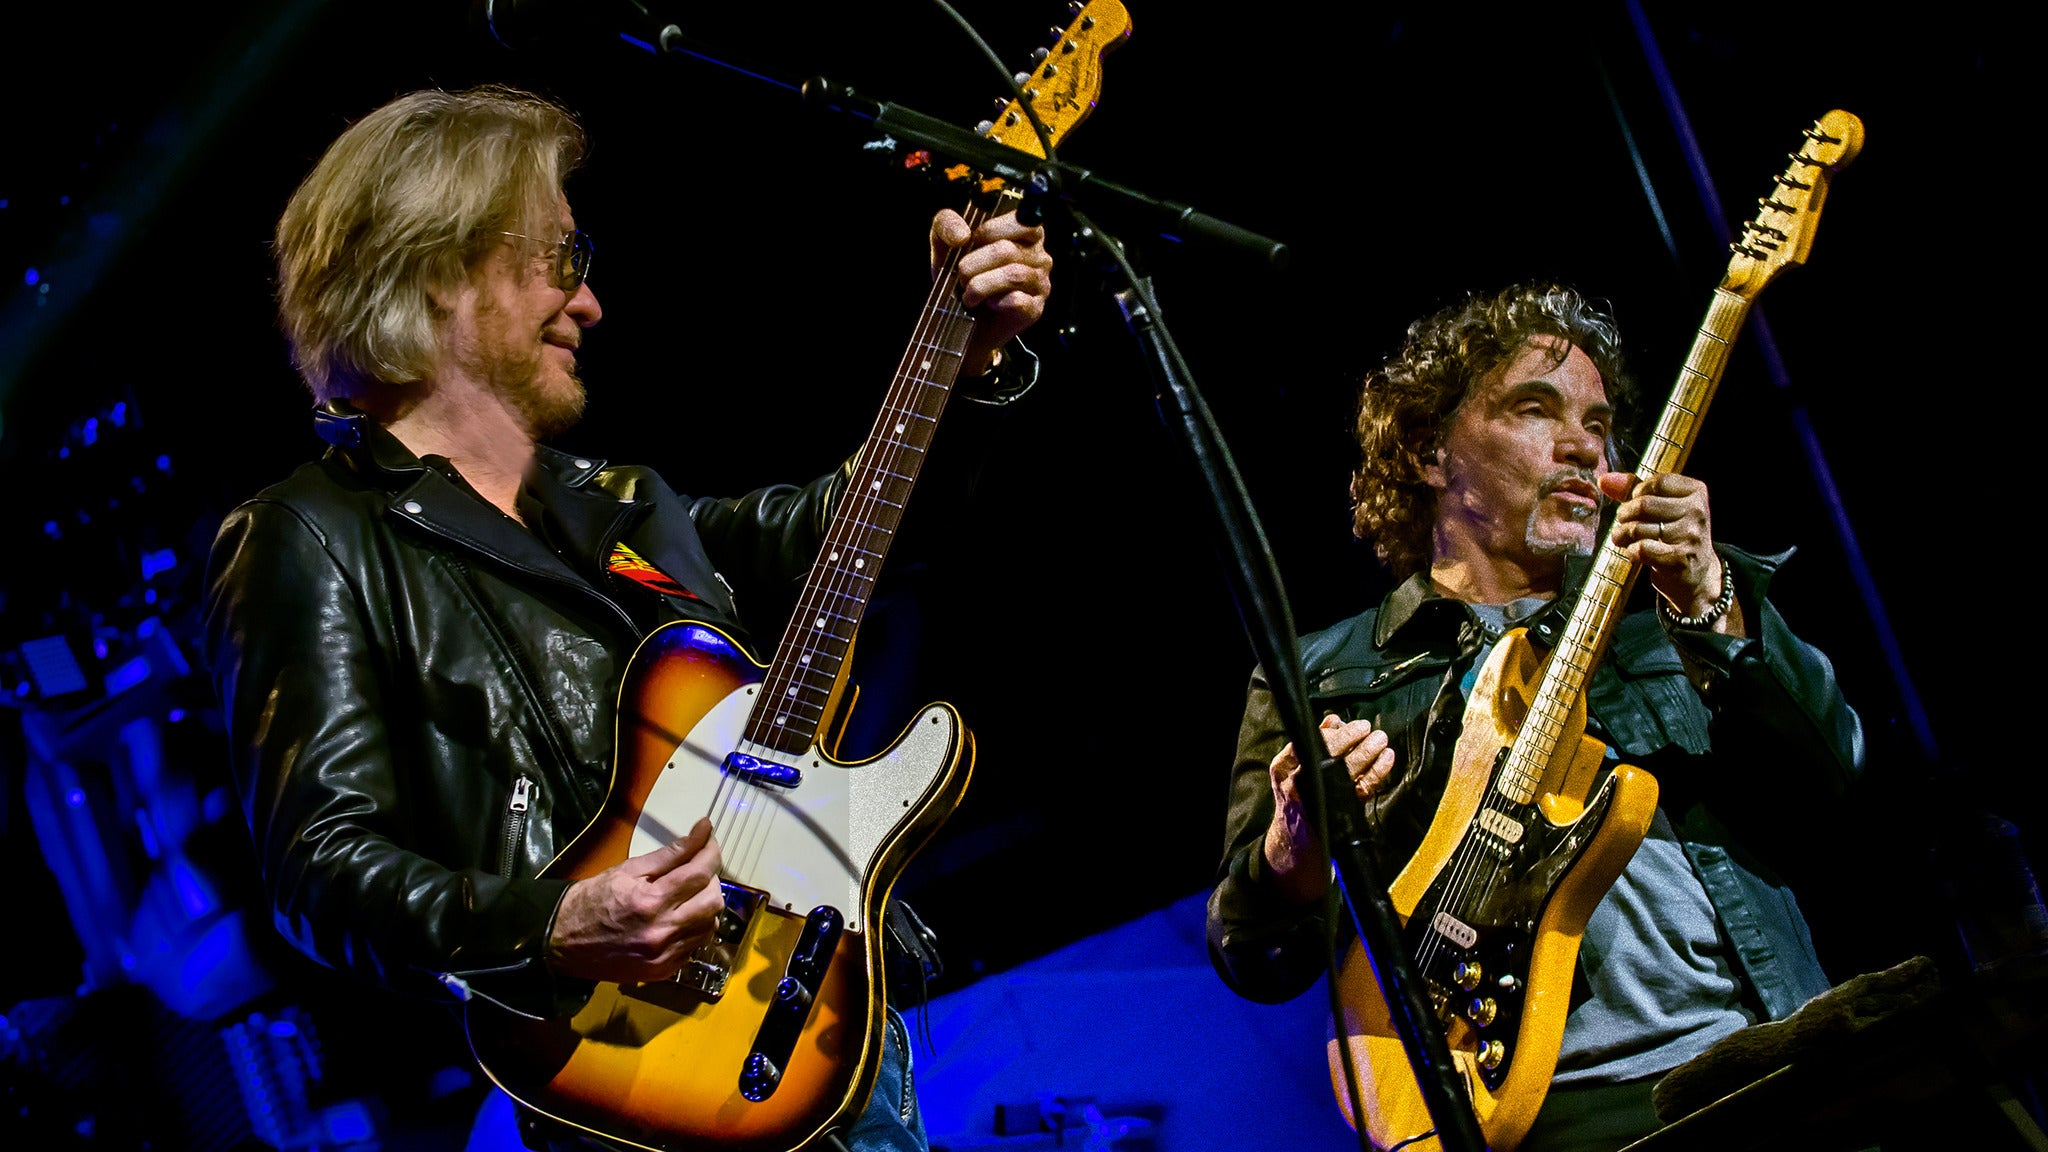 Daryl Hall & John Oates and Train at SAP Center at San Jose